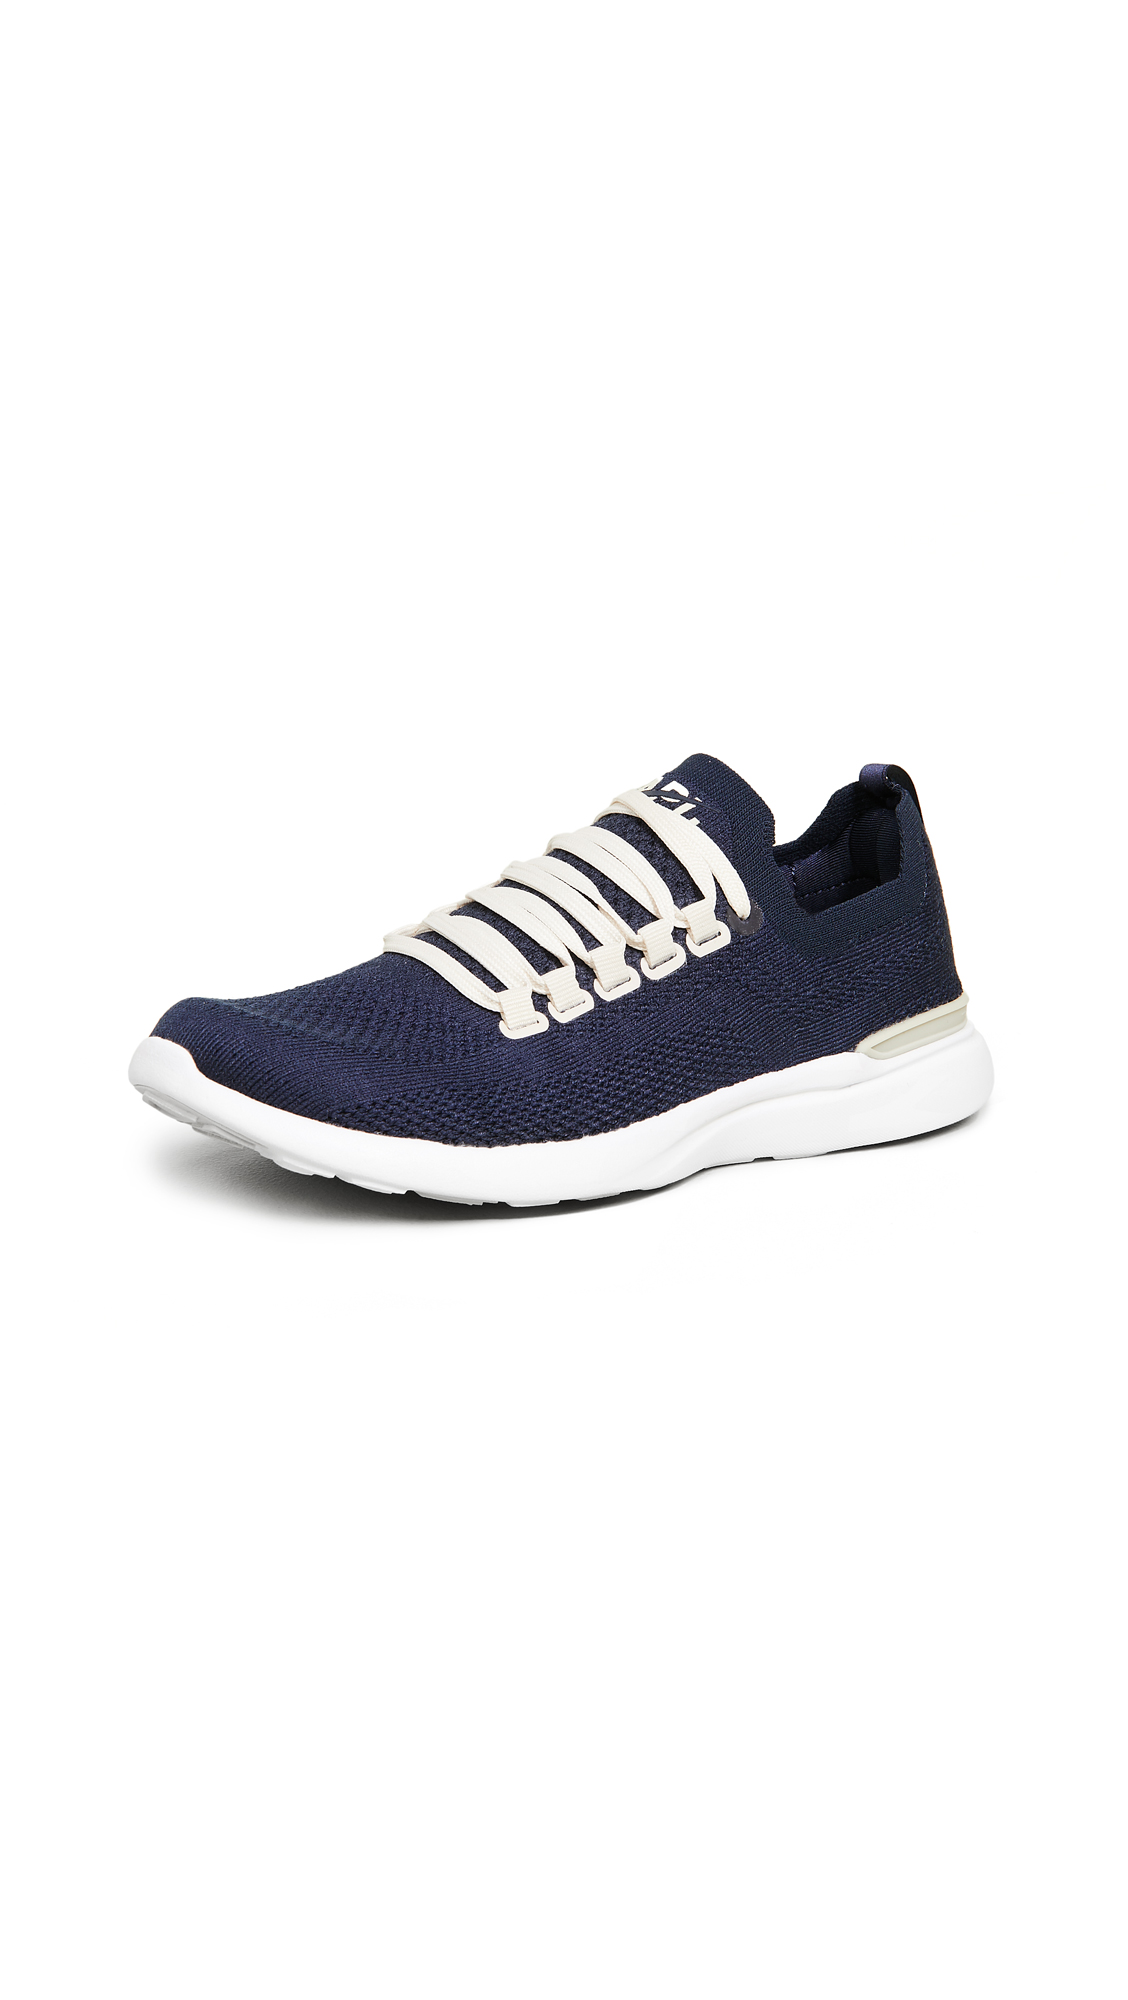 APL: Athletic Propulsion Labs TechLoom Breeze Sneakers - Navy/Parchment/White